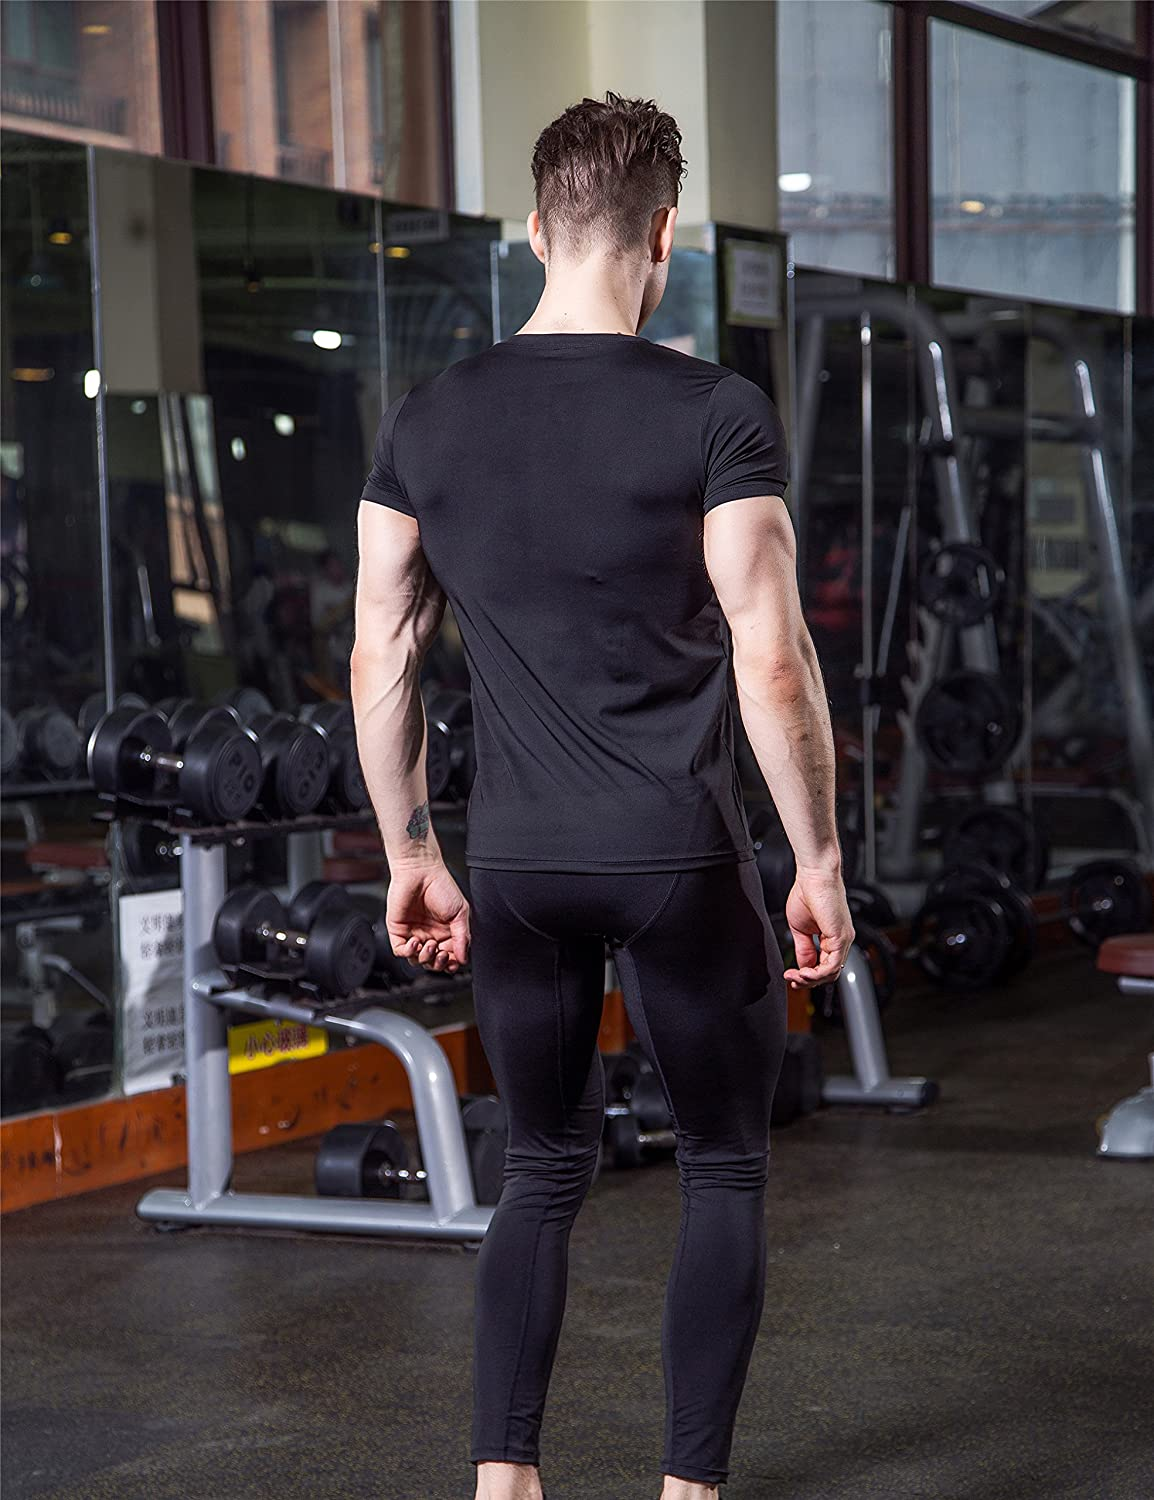 DZRZVD Mens Short Sleeve T-Shirts Baselayer Cool Dry Compression Athletic YEL4001